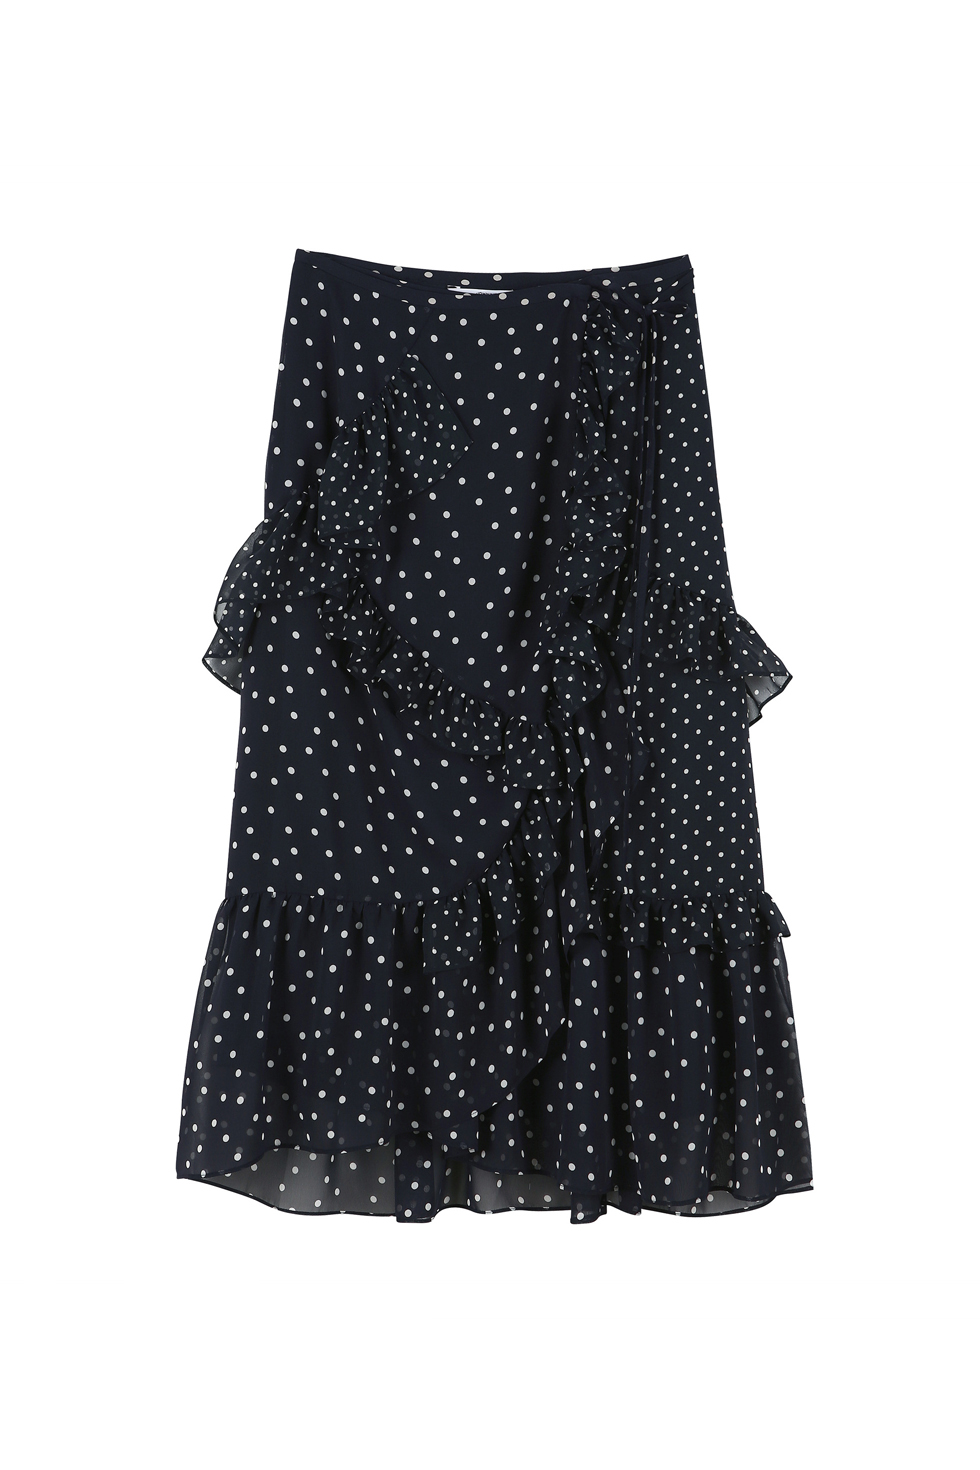 RUFFLE MIDI SKIRT - NAVY